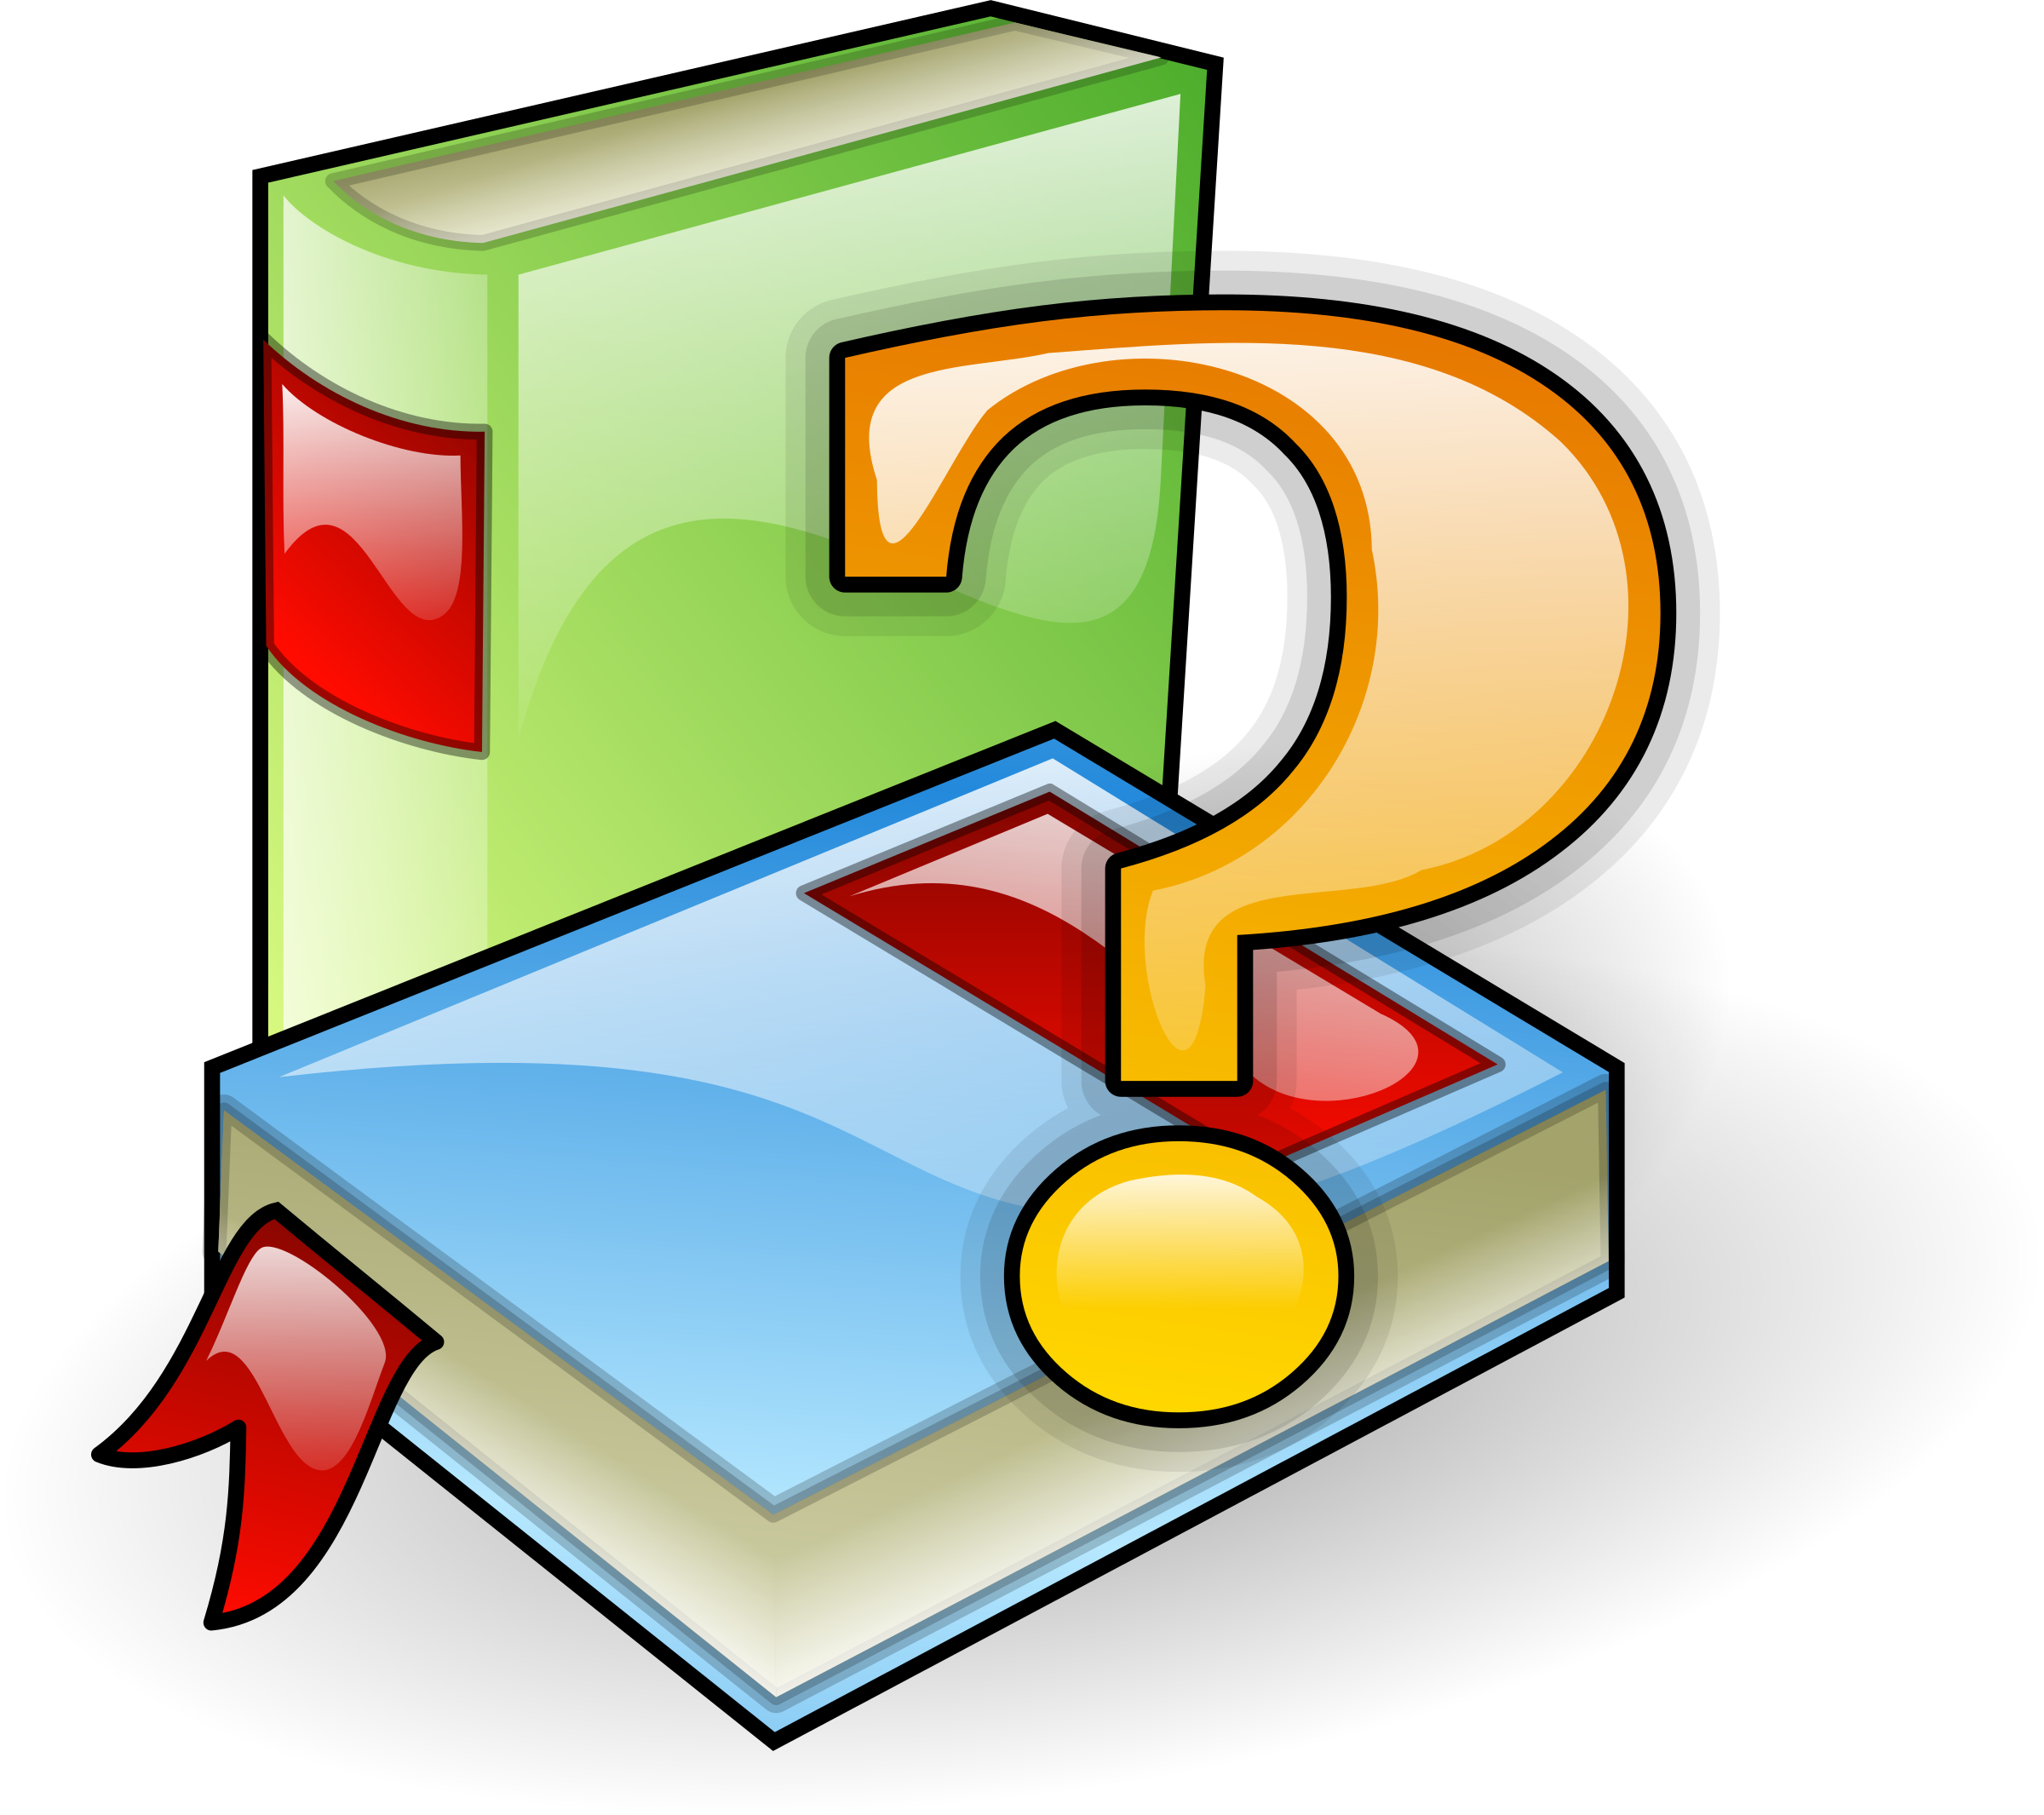 Book clipart question mark Books mark with Clipart Books